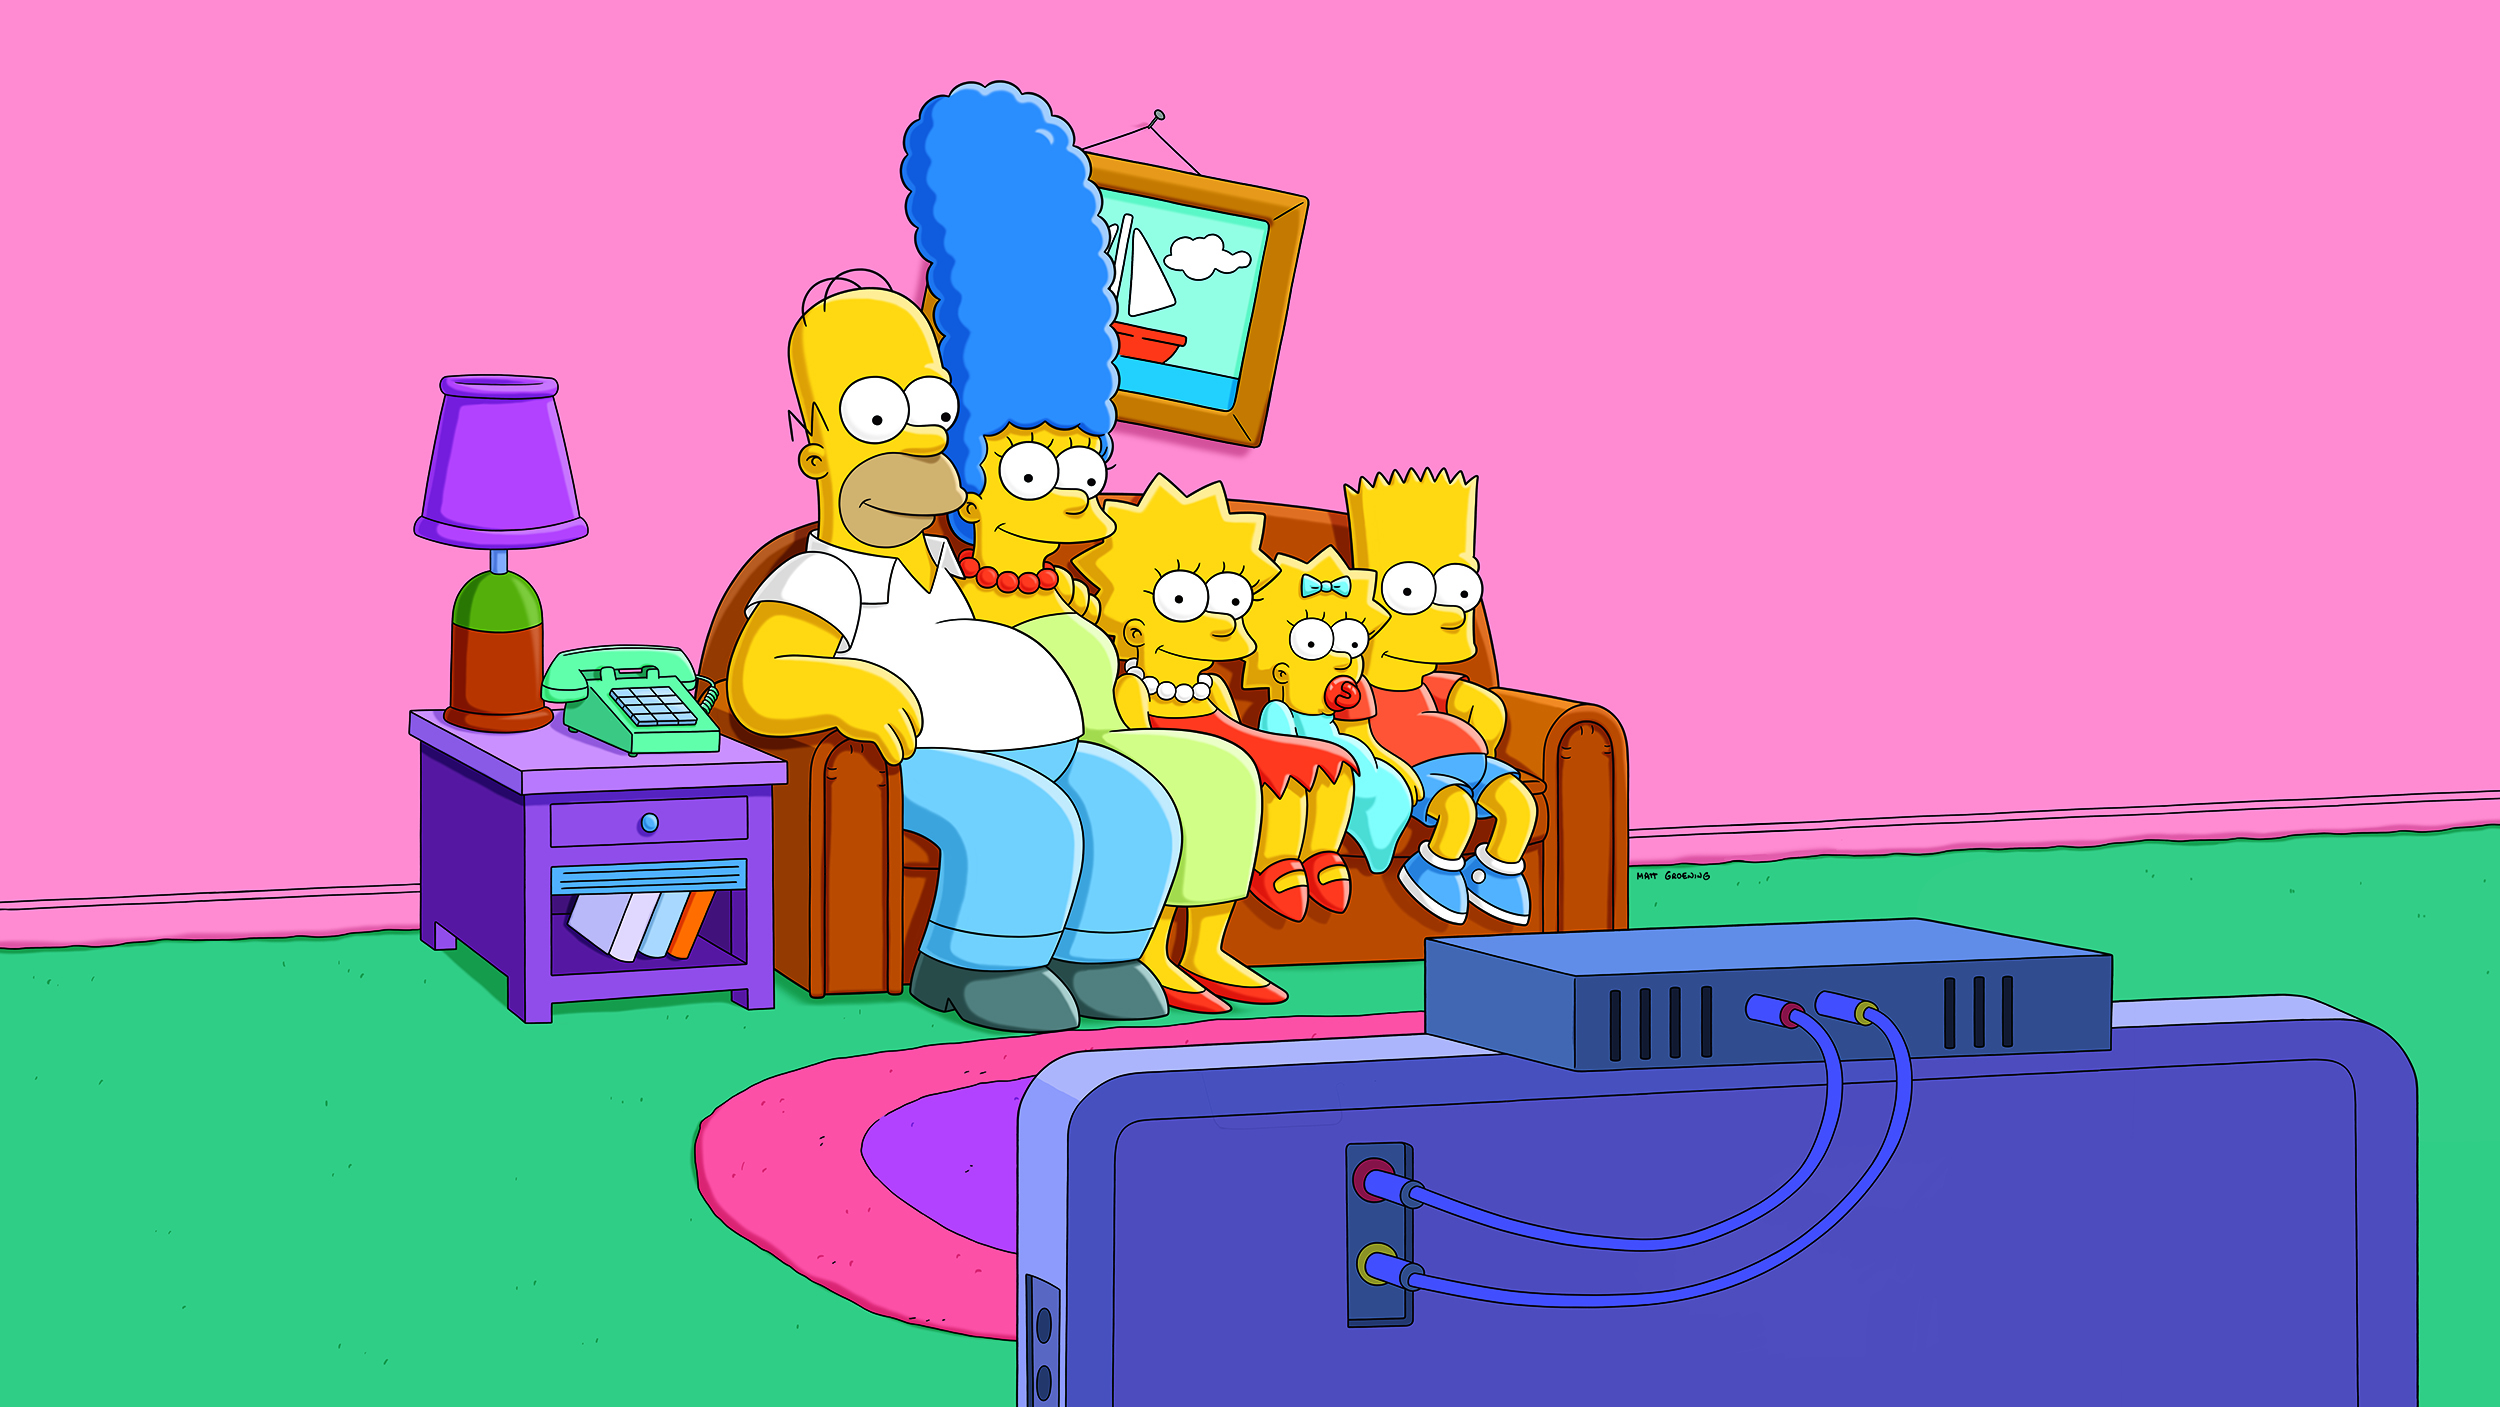 See \'The Simpsons\' living room decked out in 6 modern styles